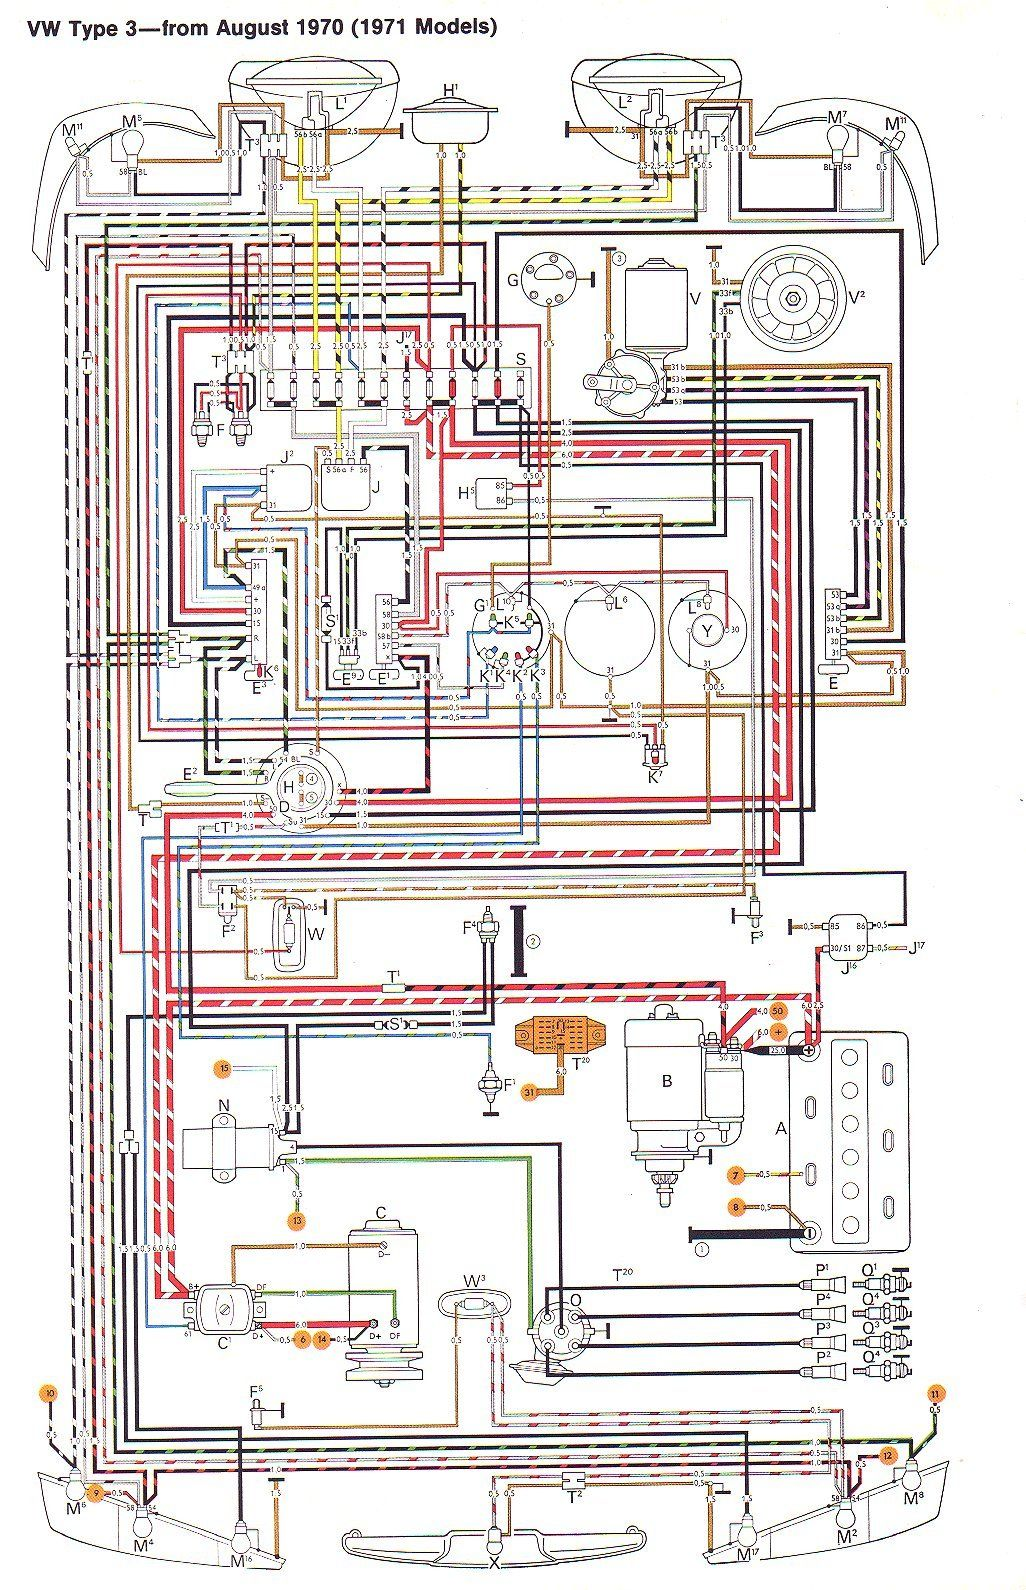 e0db58370f79a63d02d45f00cf63f44a 71 vw t3 wiring diagram car projects pinterest volkswagen 1971 vw bus wiring diagram at bayanpartner.co